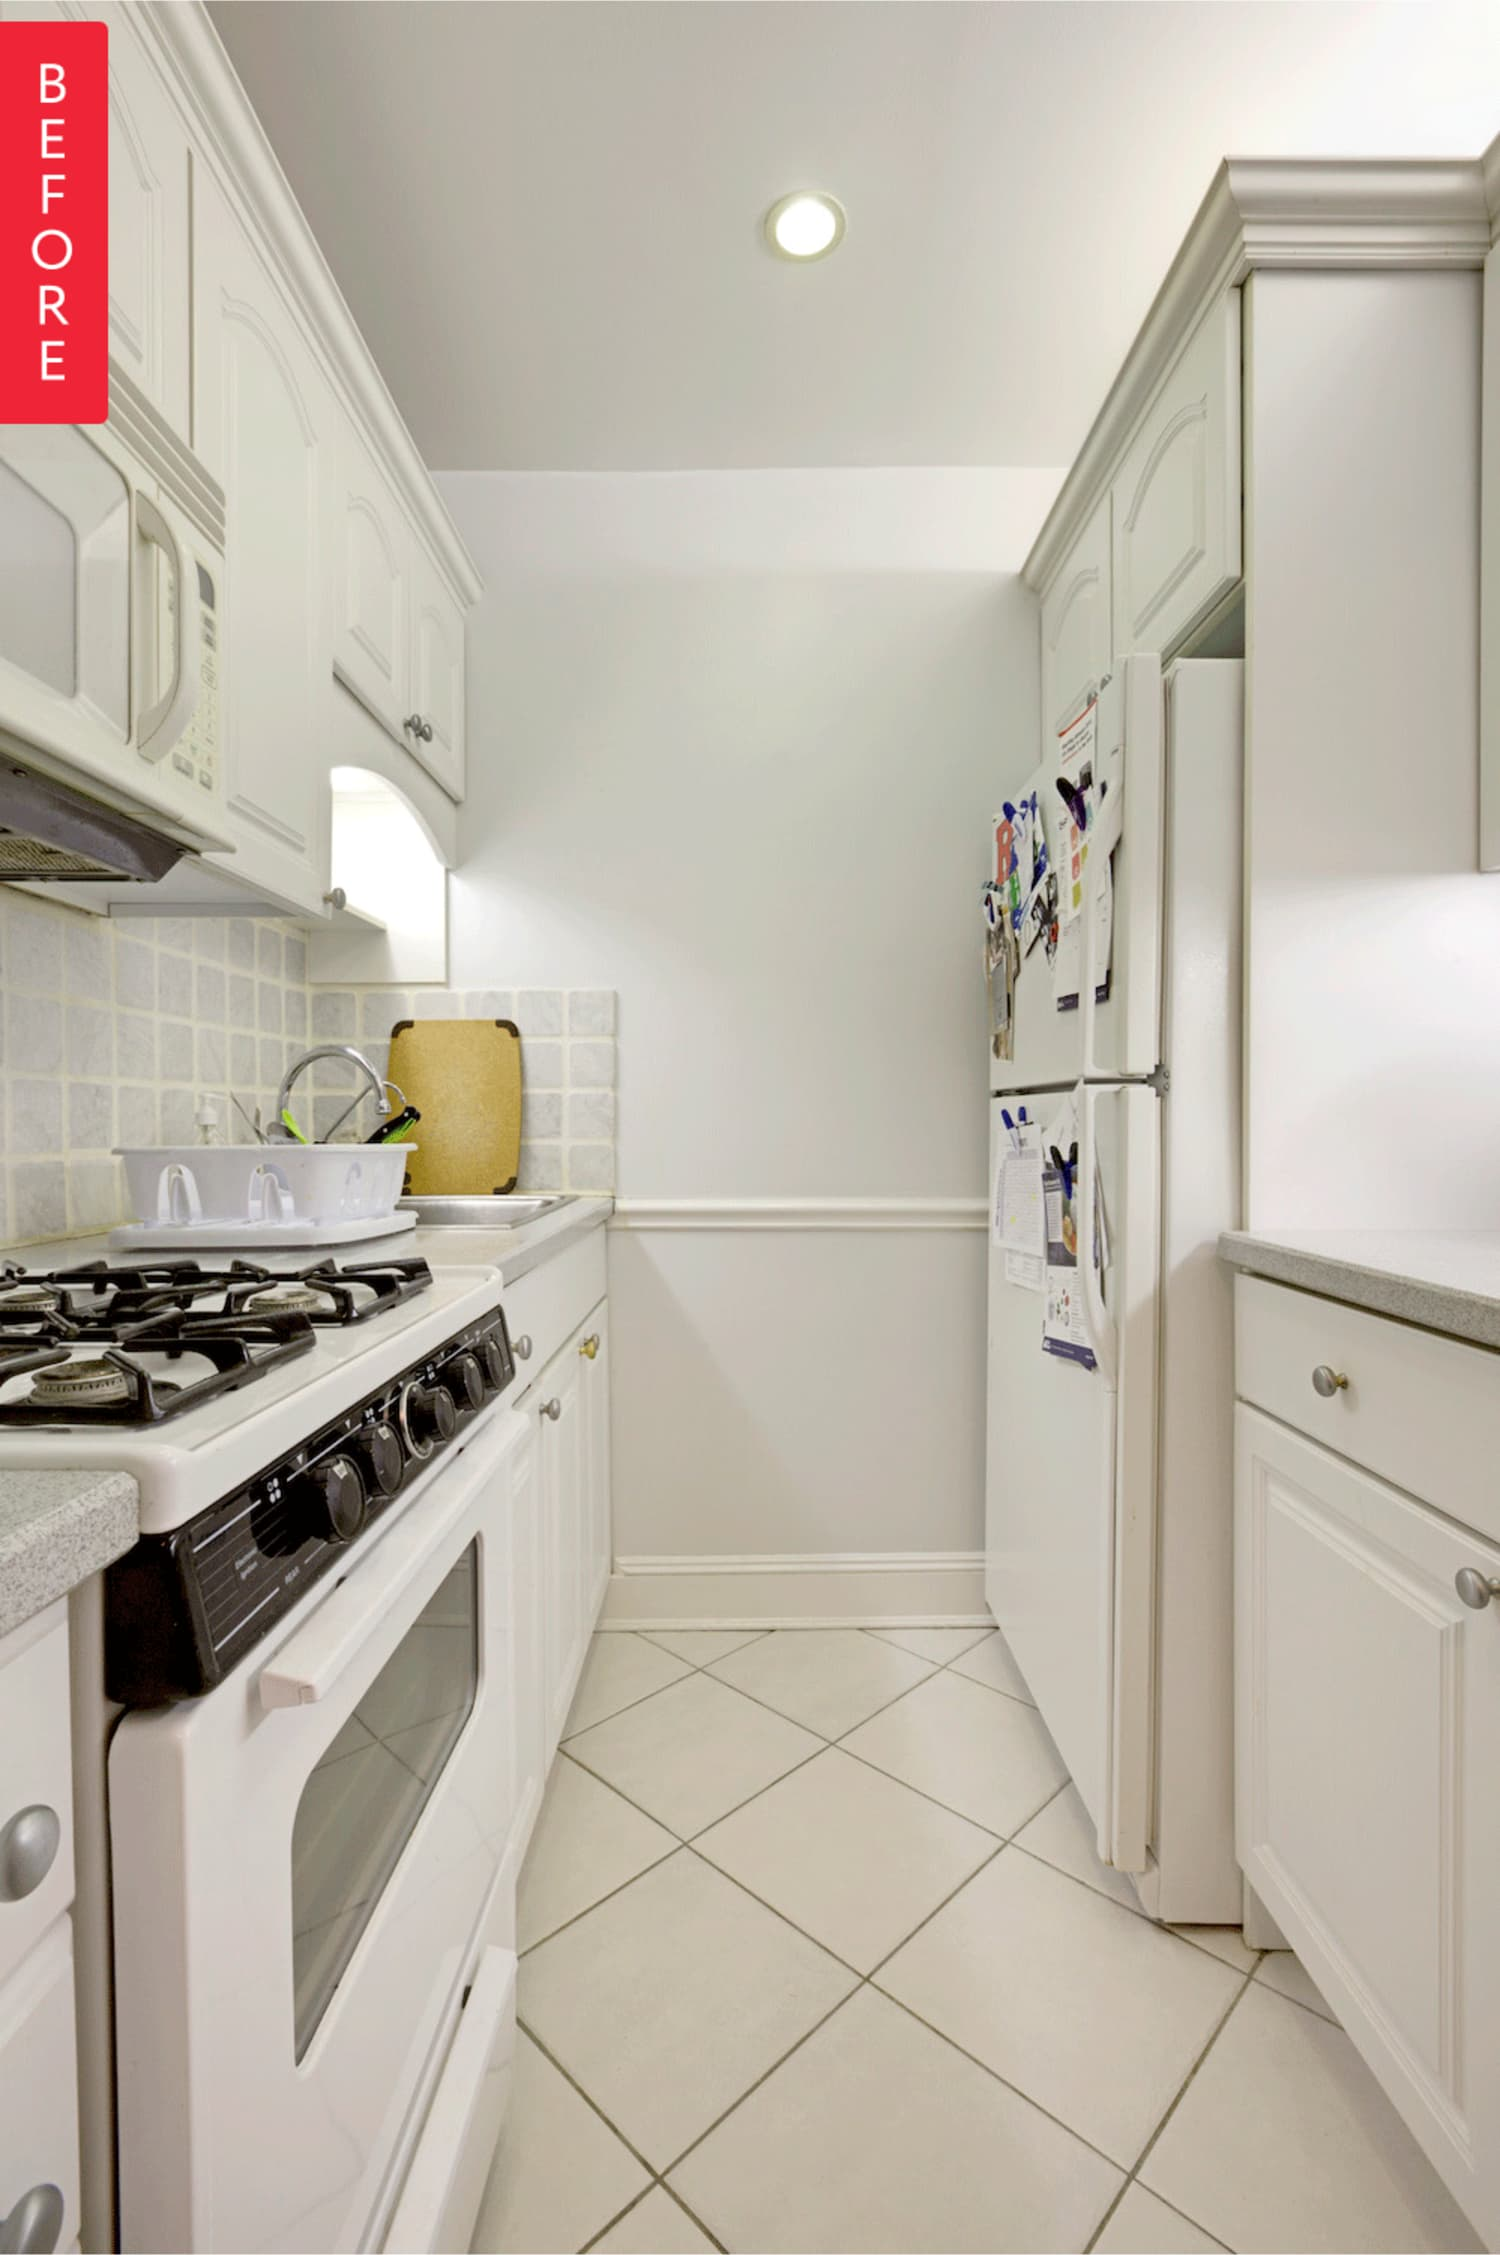 Before & After: A Modern Update for a Galley Kitchen ...